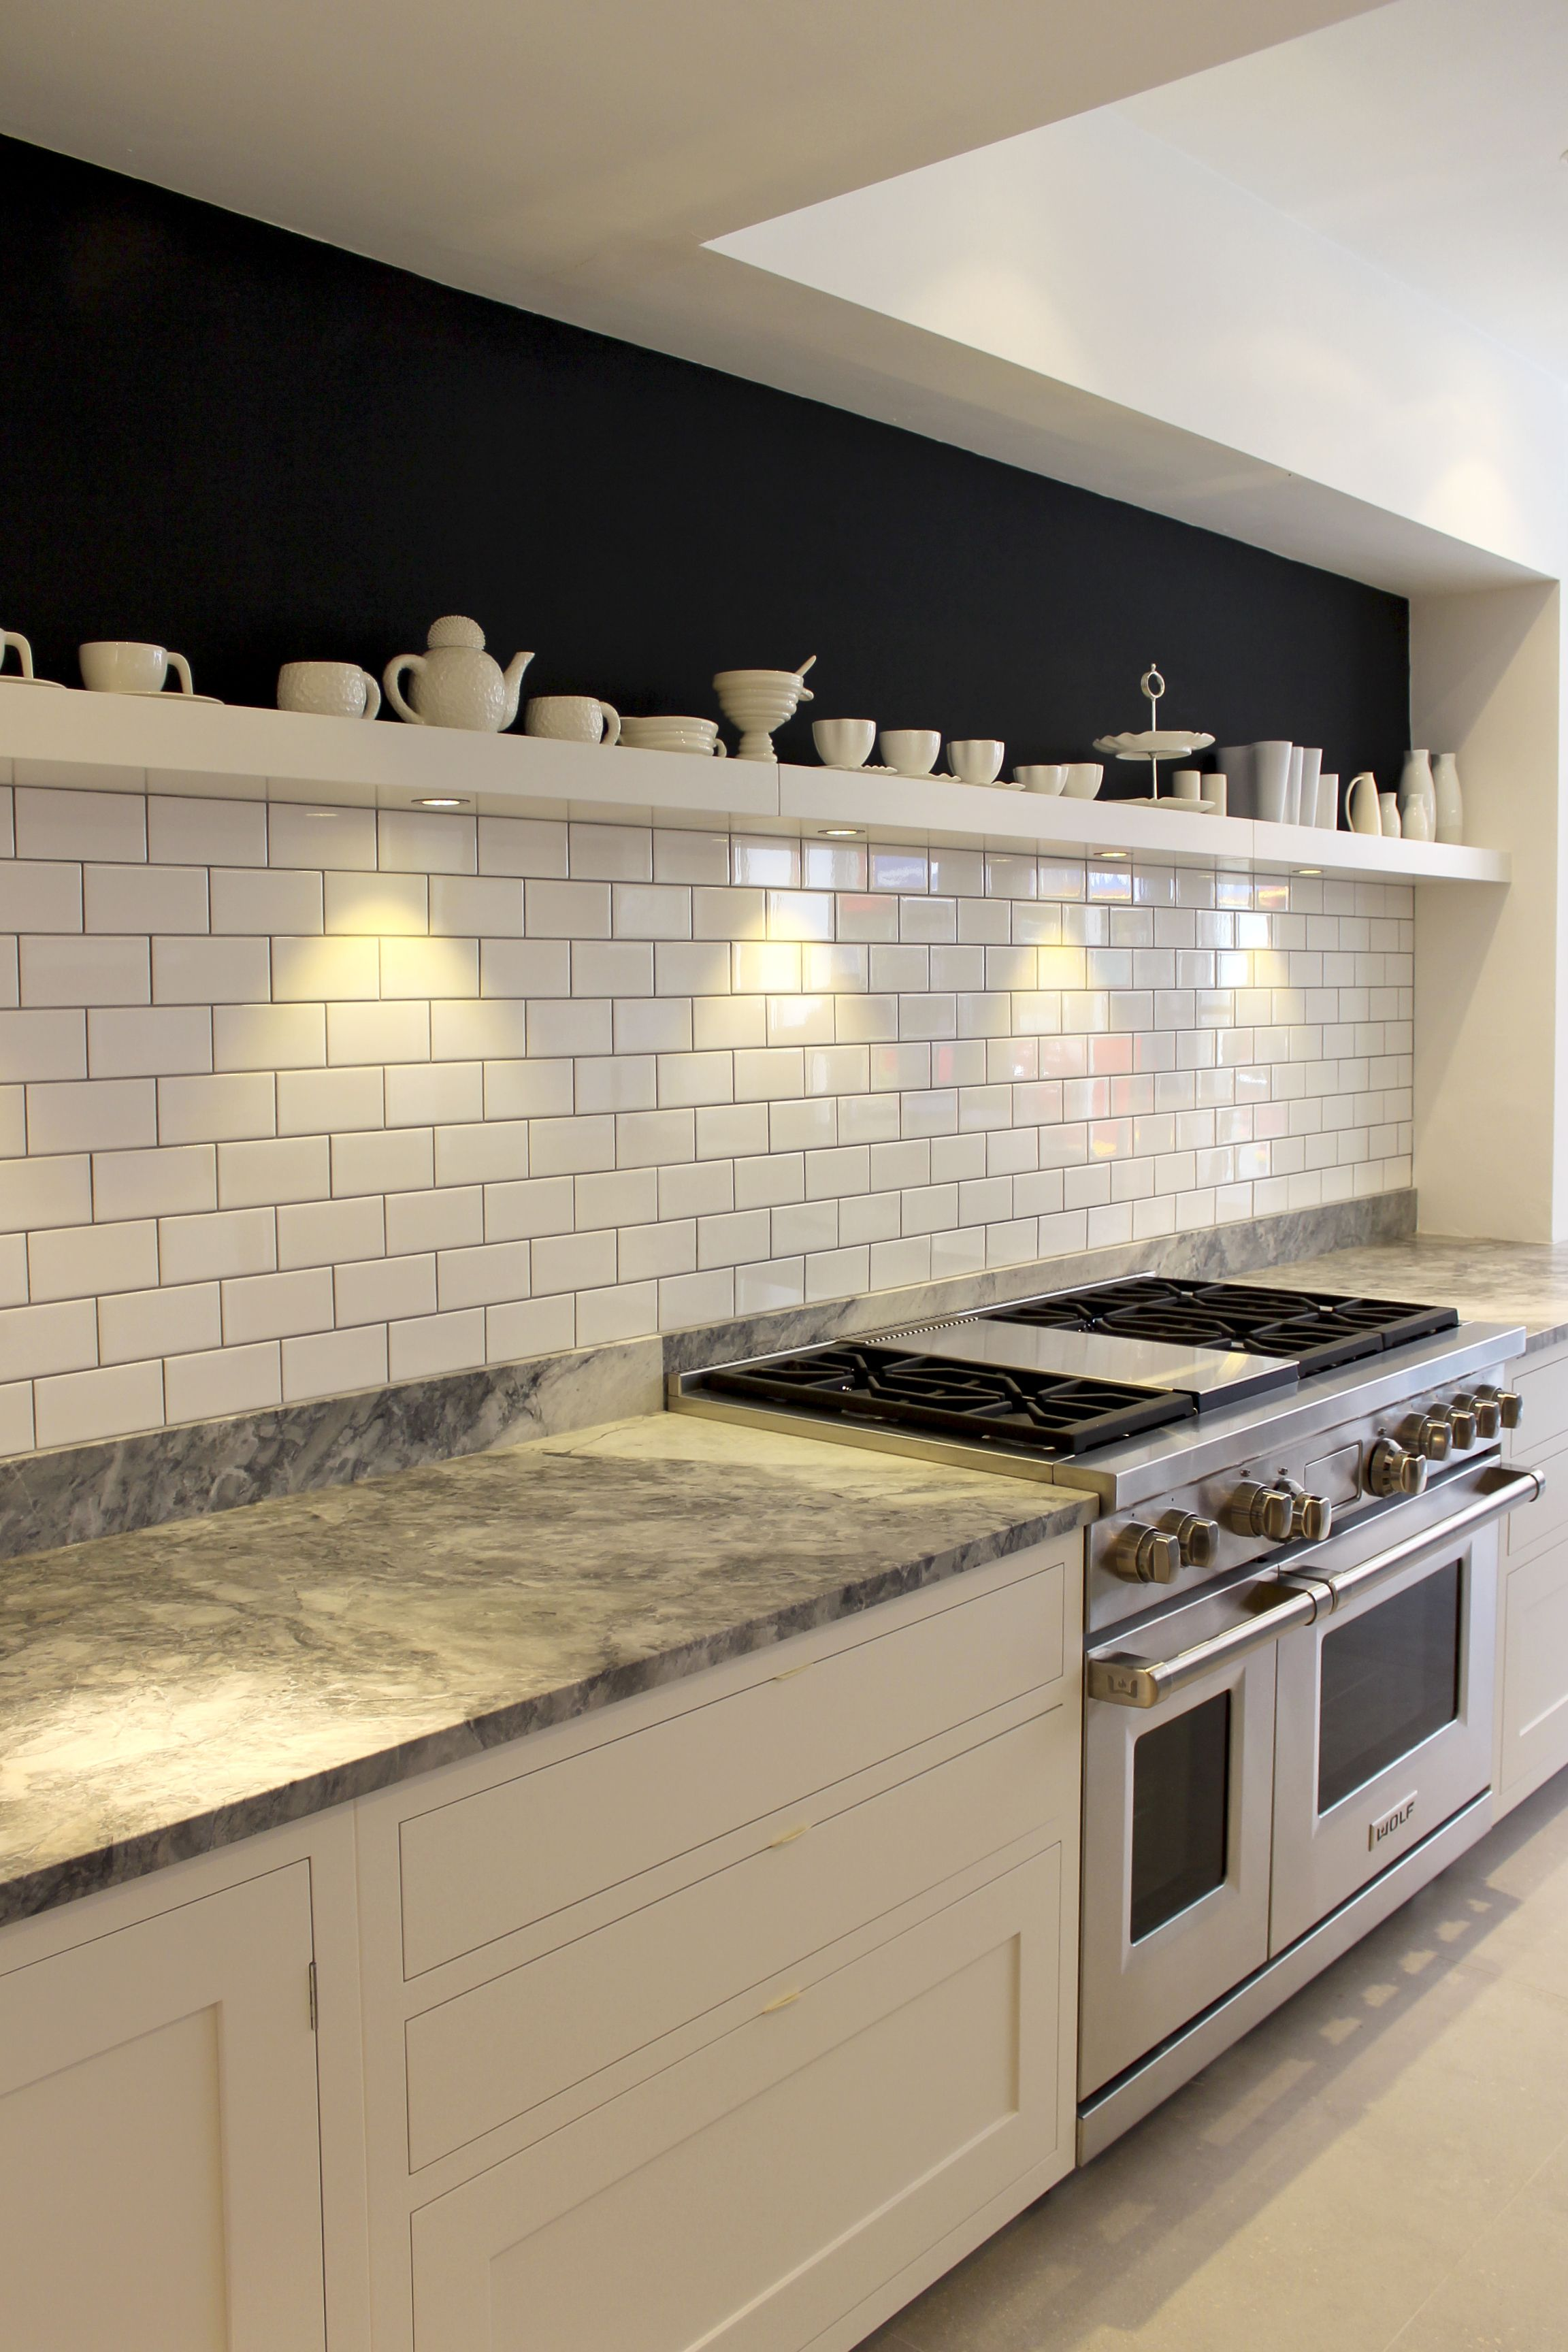 Roundhouse bespoke kitchen in fulham showroom ideas for the house